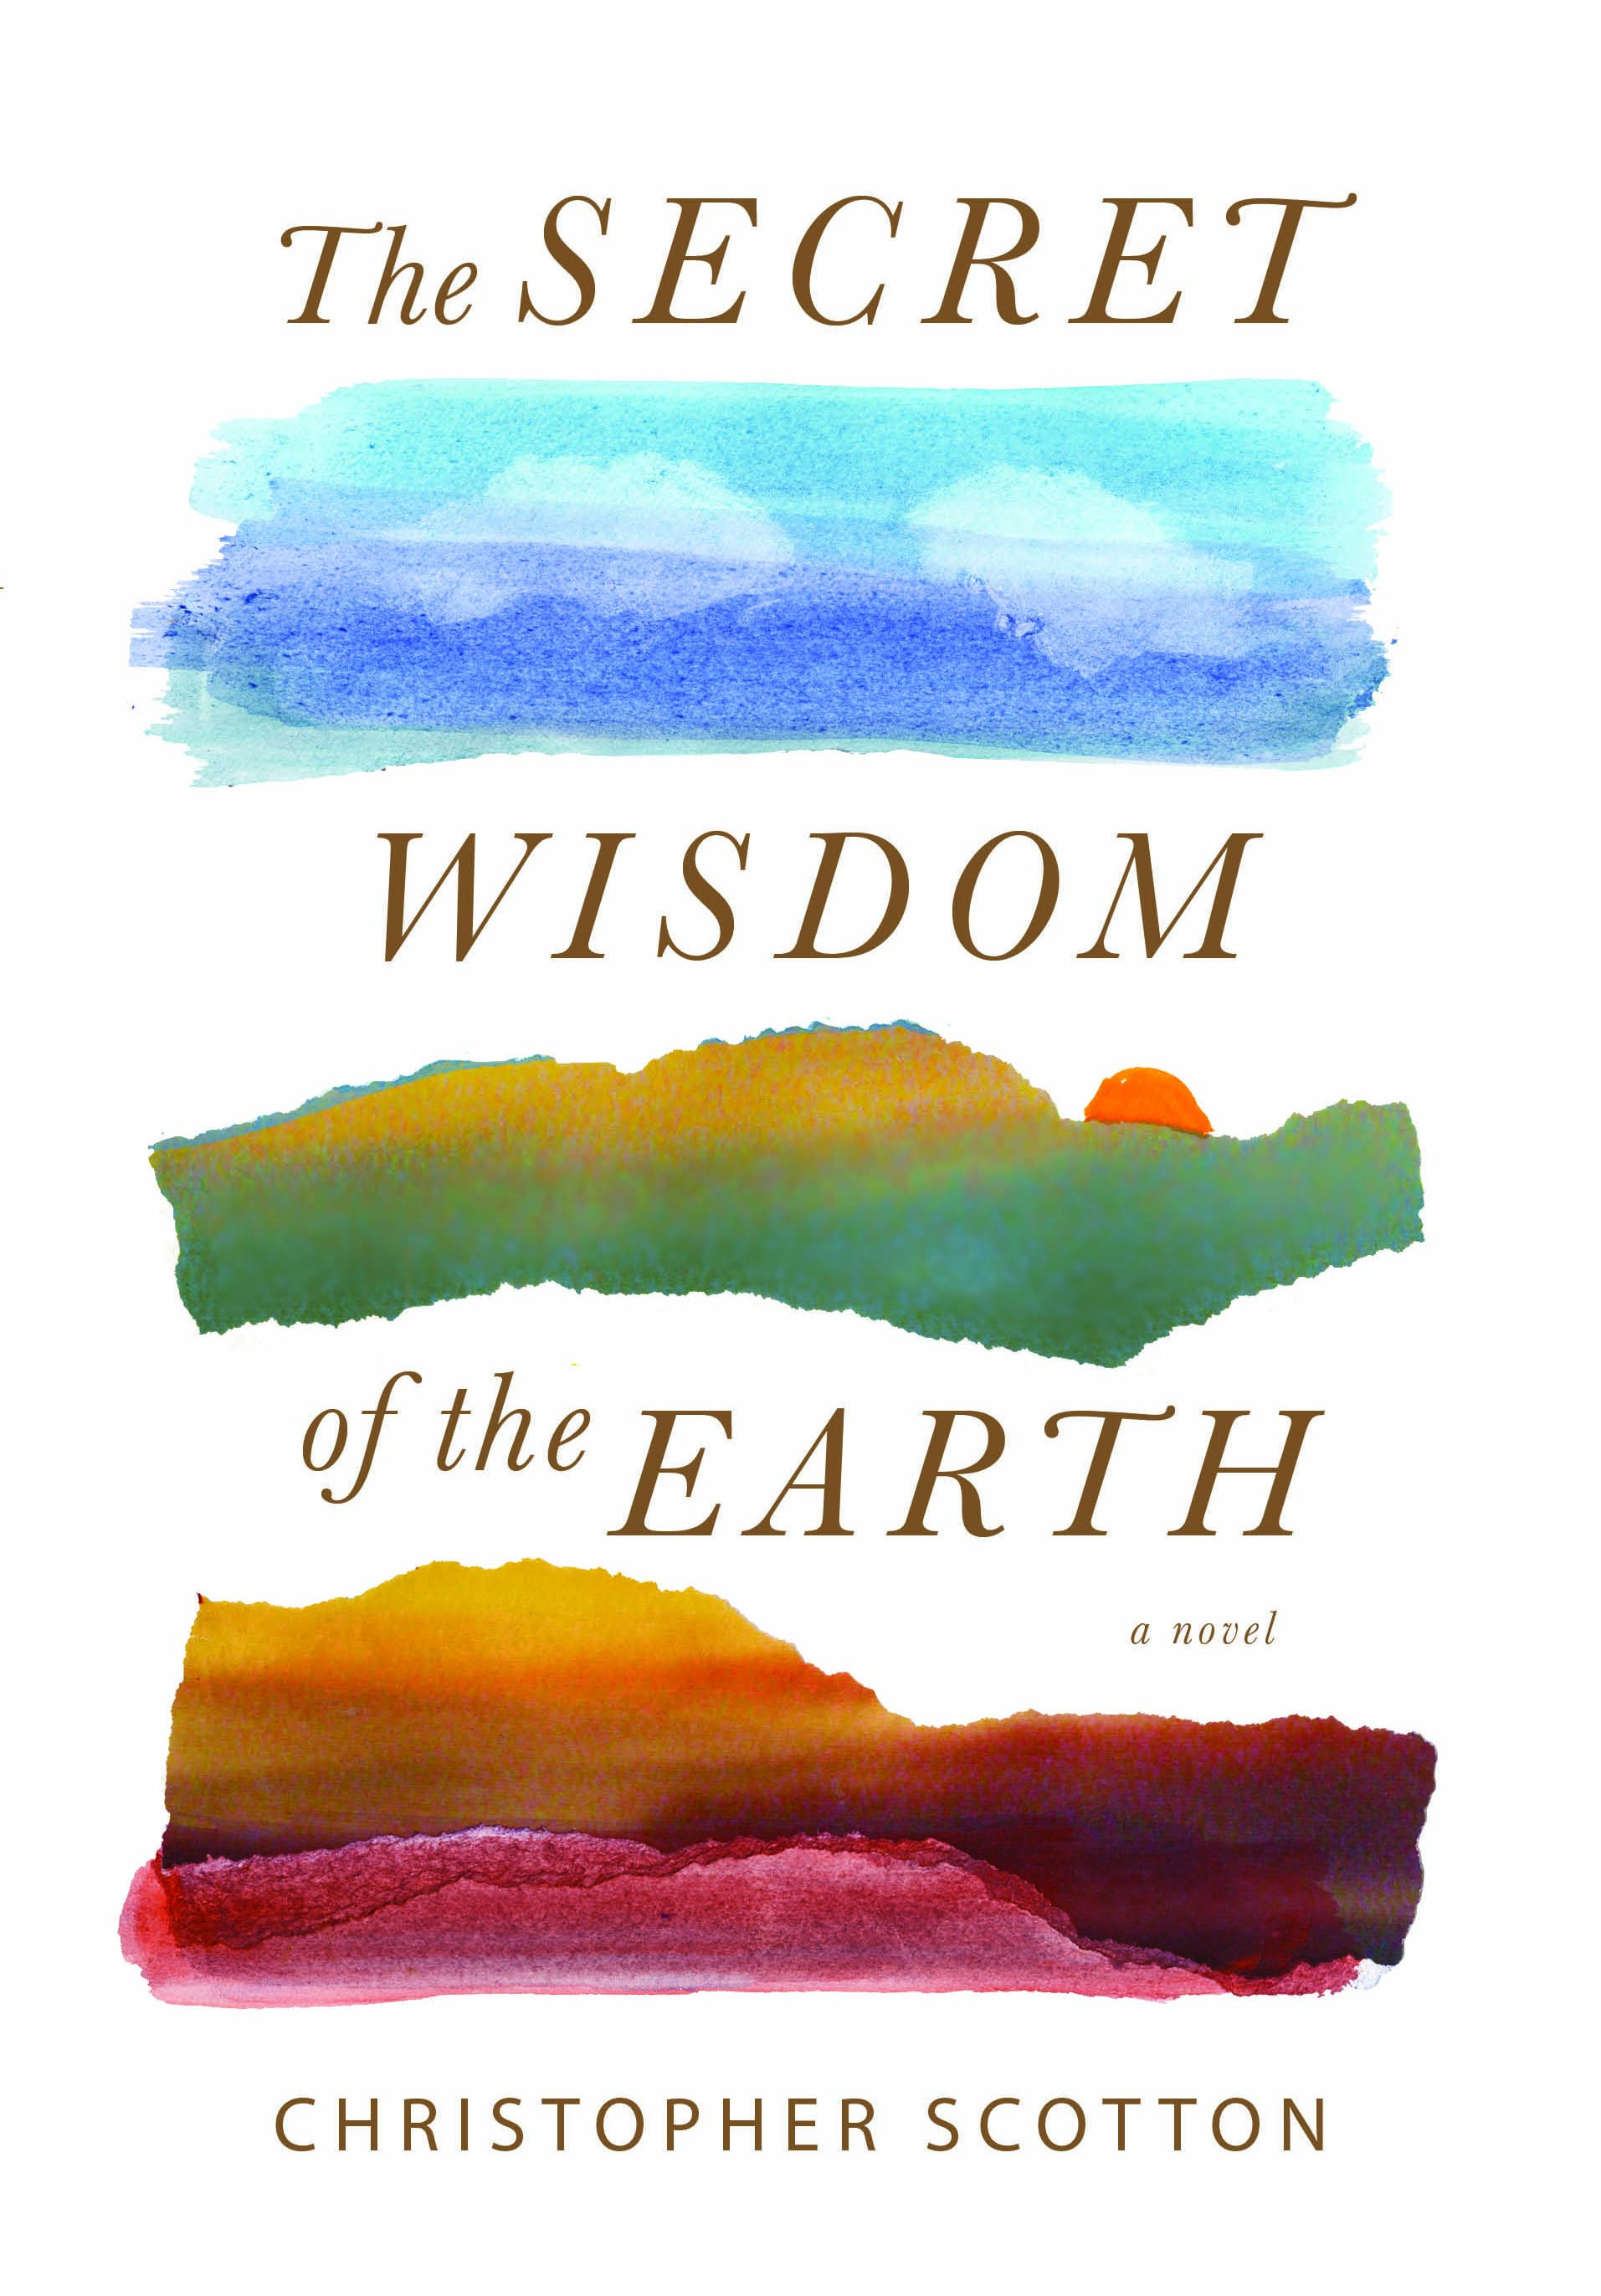 All of It - November 2015 Book Report - The Secret Wisdom of the Earth